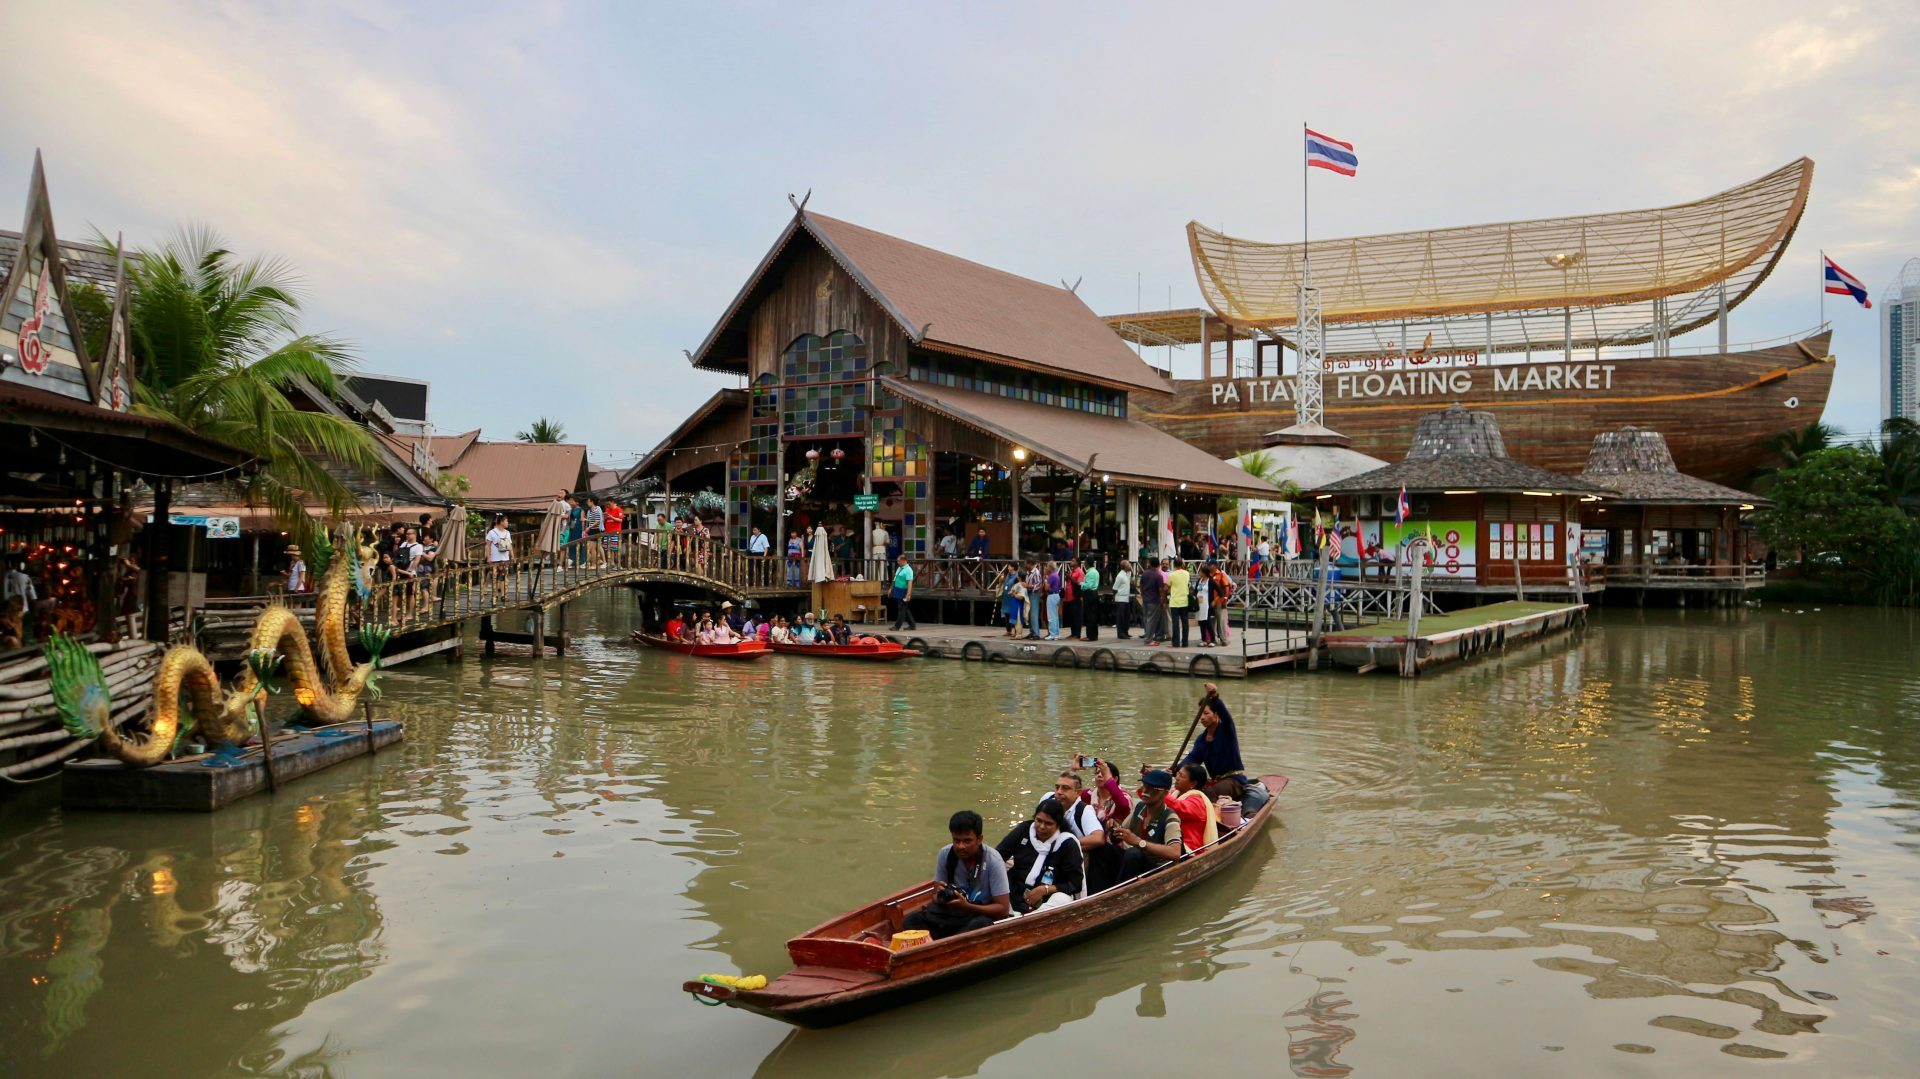 Pattaya Floating Market, another destination in my third day of Bangkok and Pattaya trip.